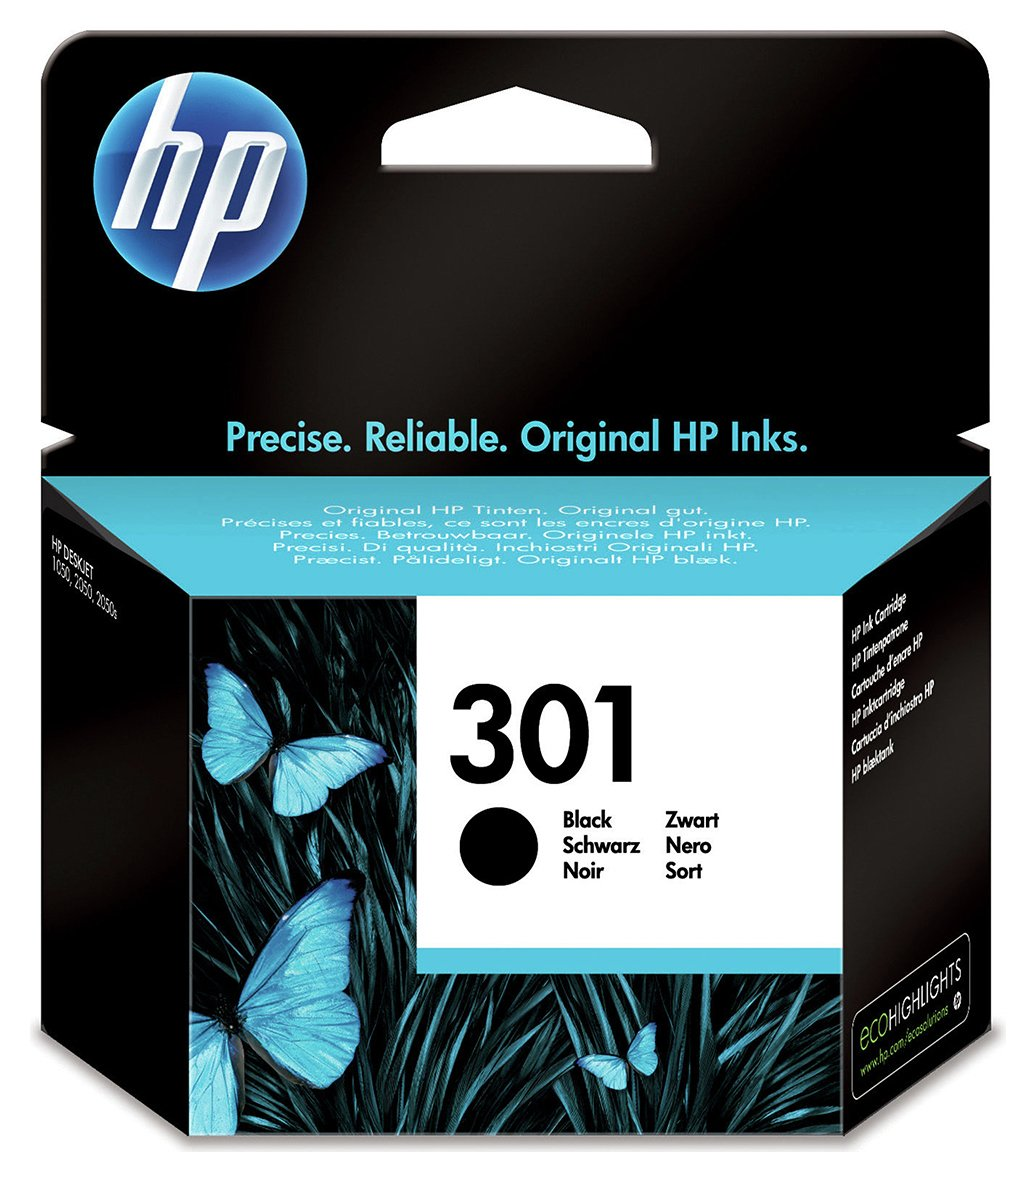 HP 301 Original Ink Cartridge - Black from HP